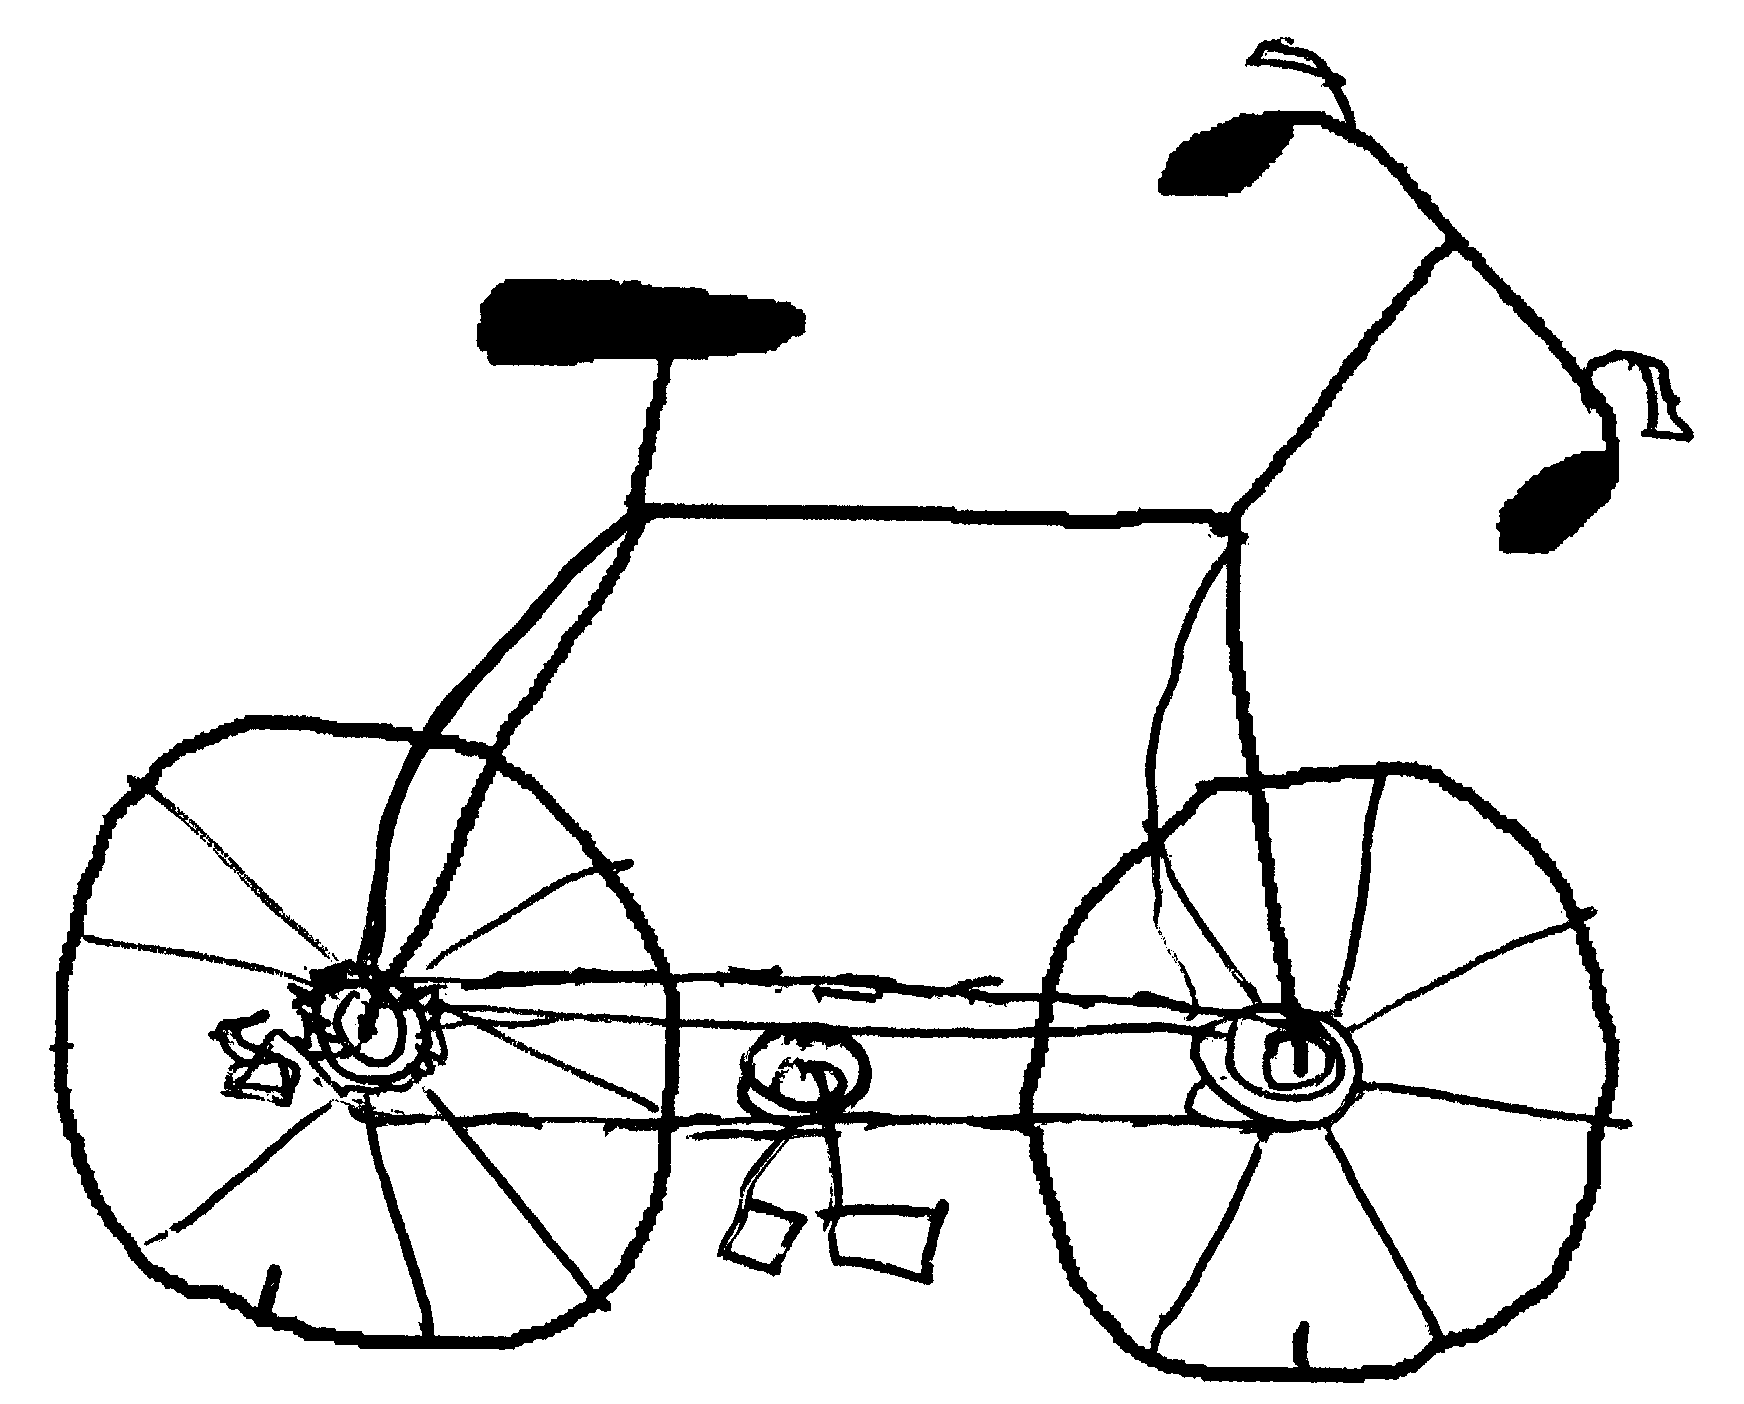 Drawn bicycle The a Science draw Atkinson: